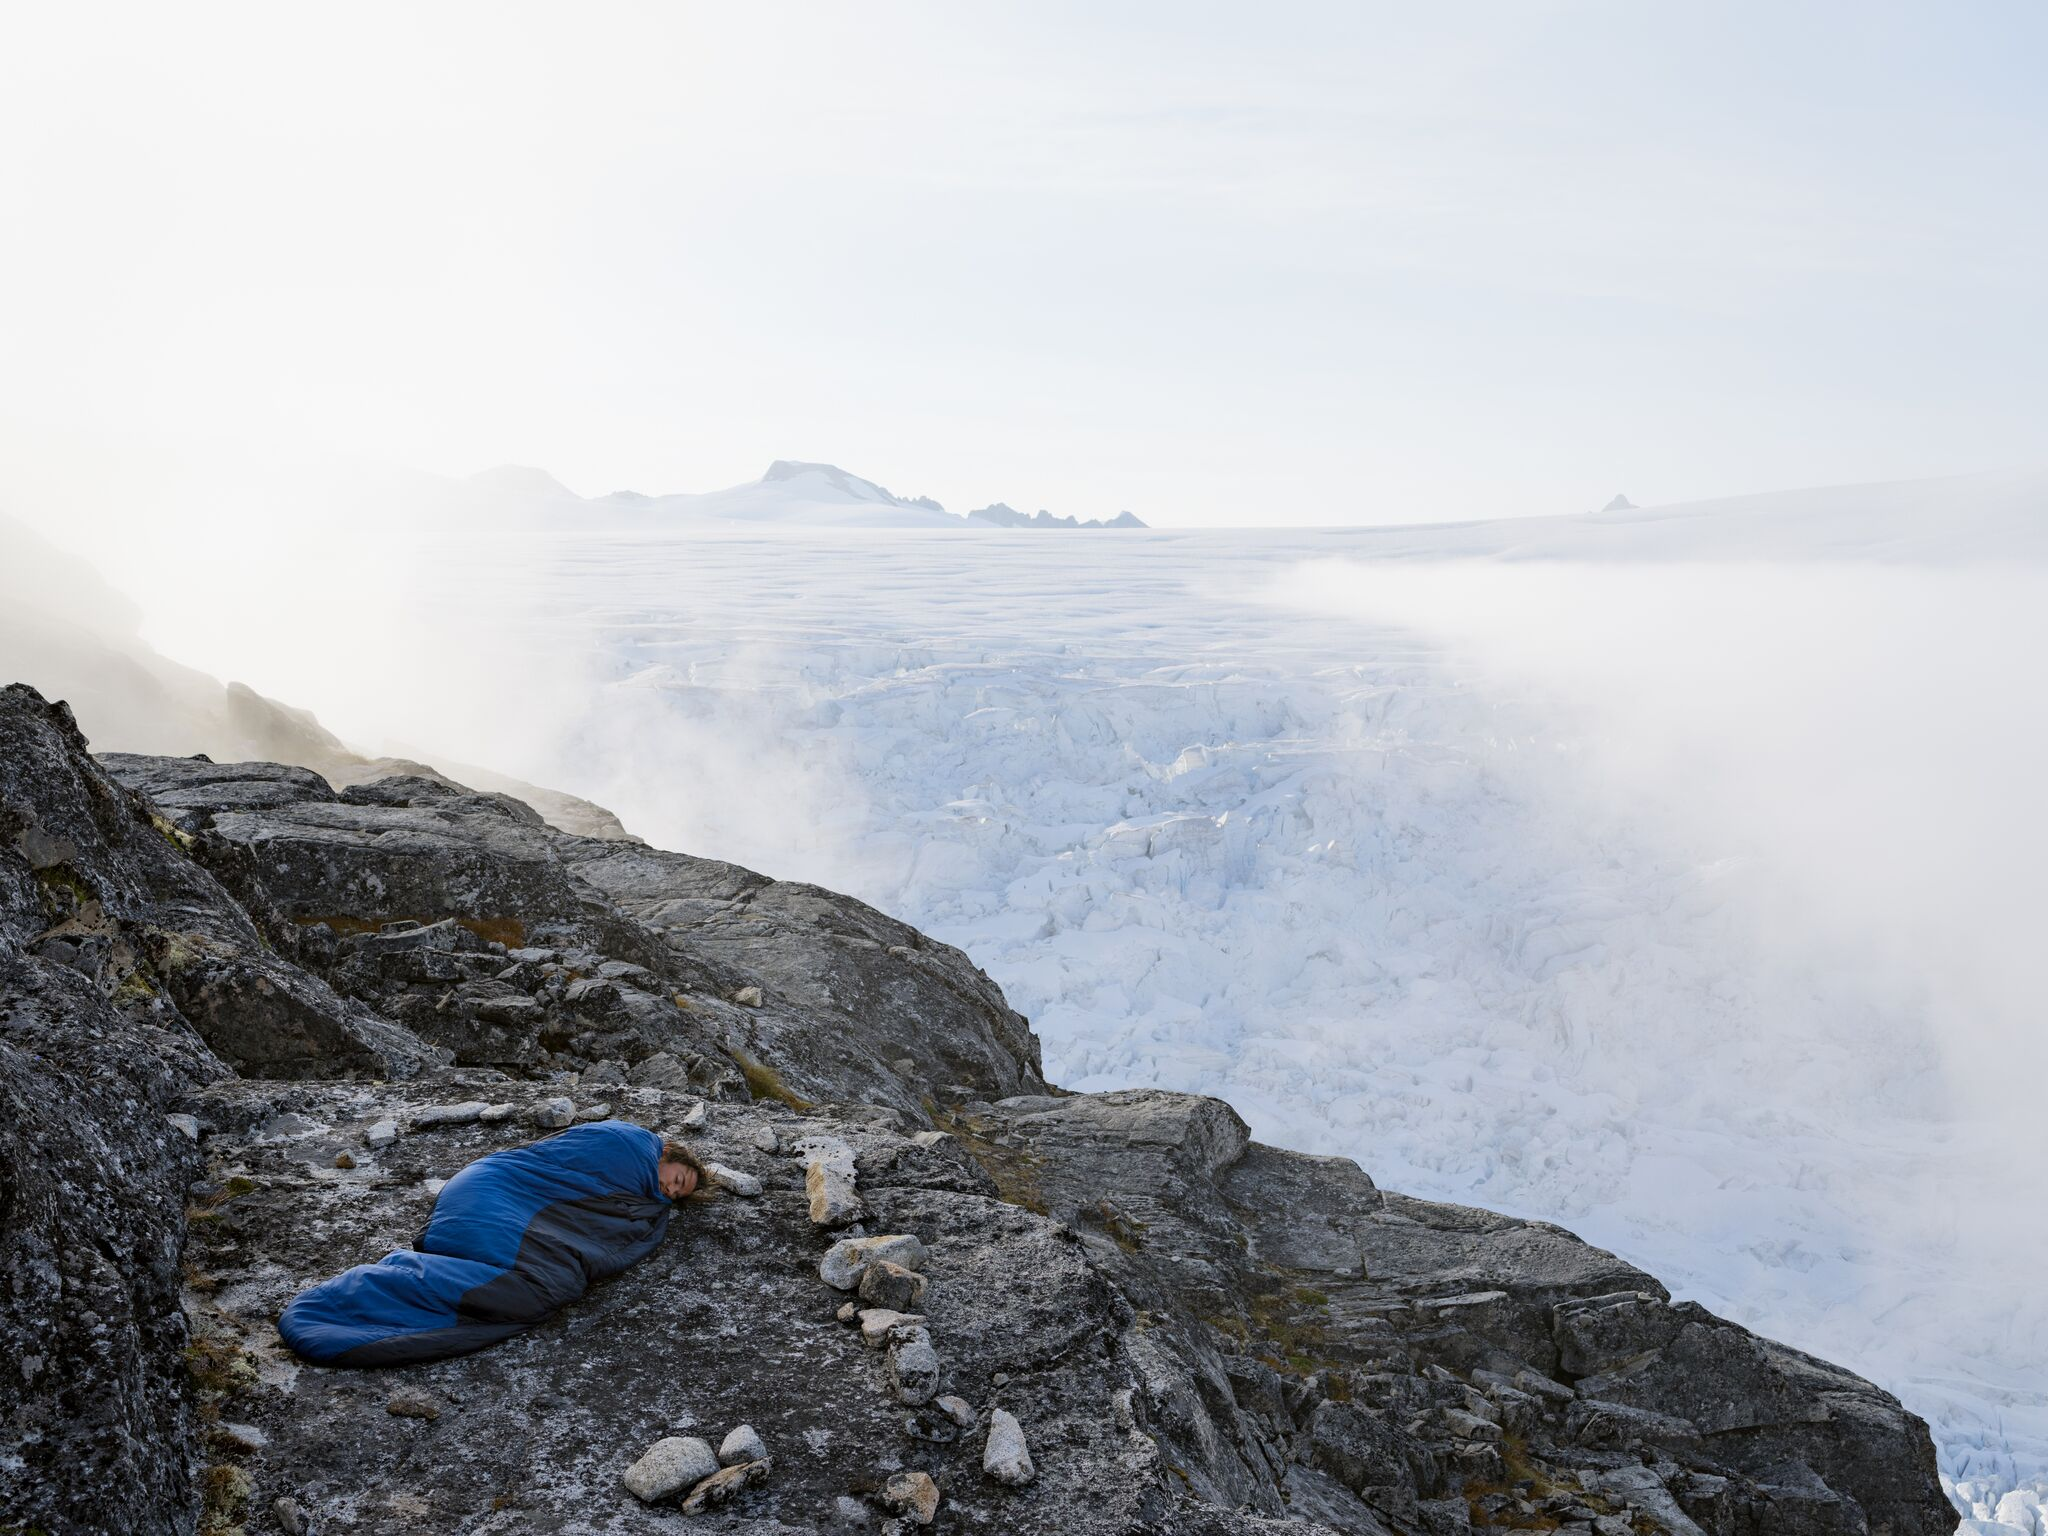 Evan Sleeping at Camp 18, Juneau Icefield Research Program, Alaska 2016    If climate-warming trends continue, the Juneau Icefield is expected to completely disappear by 2200.